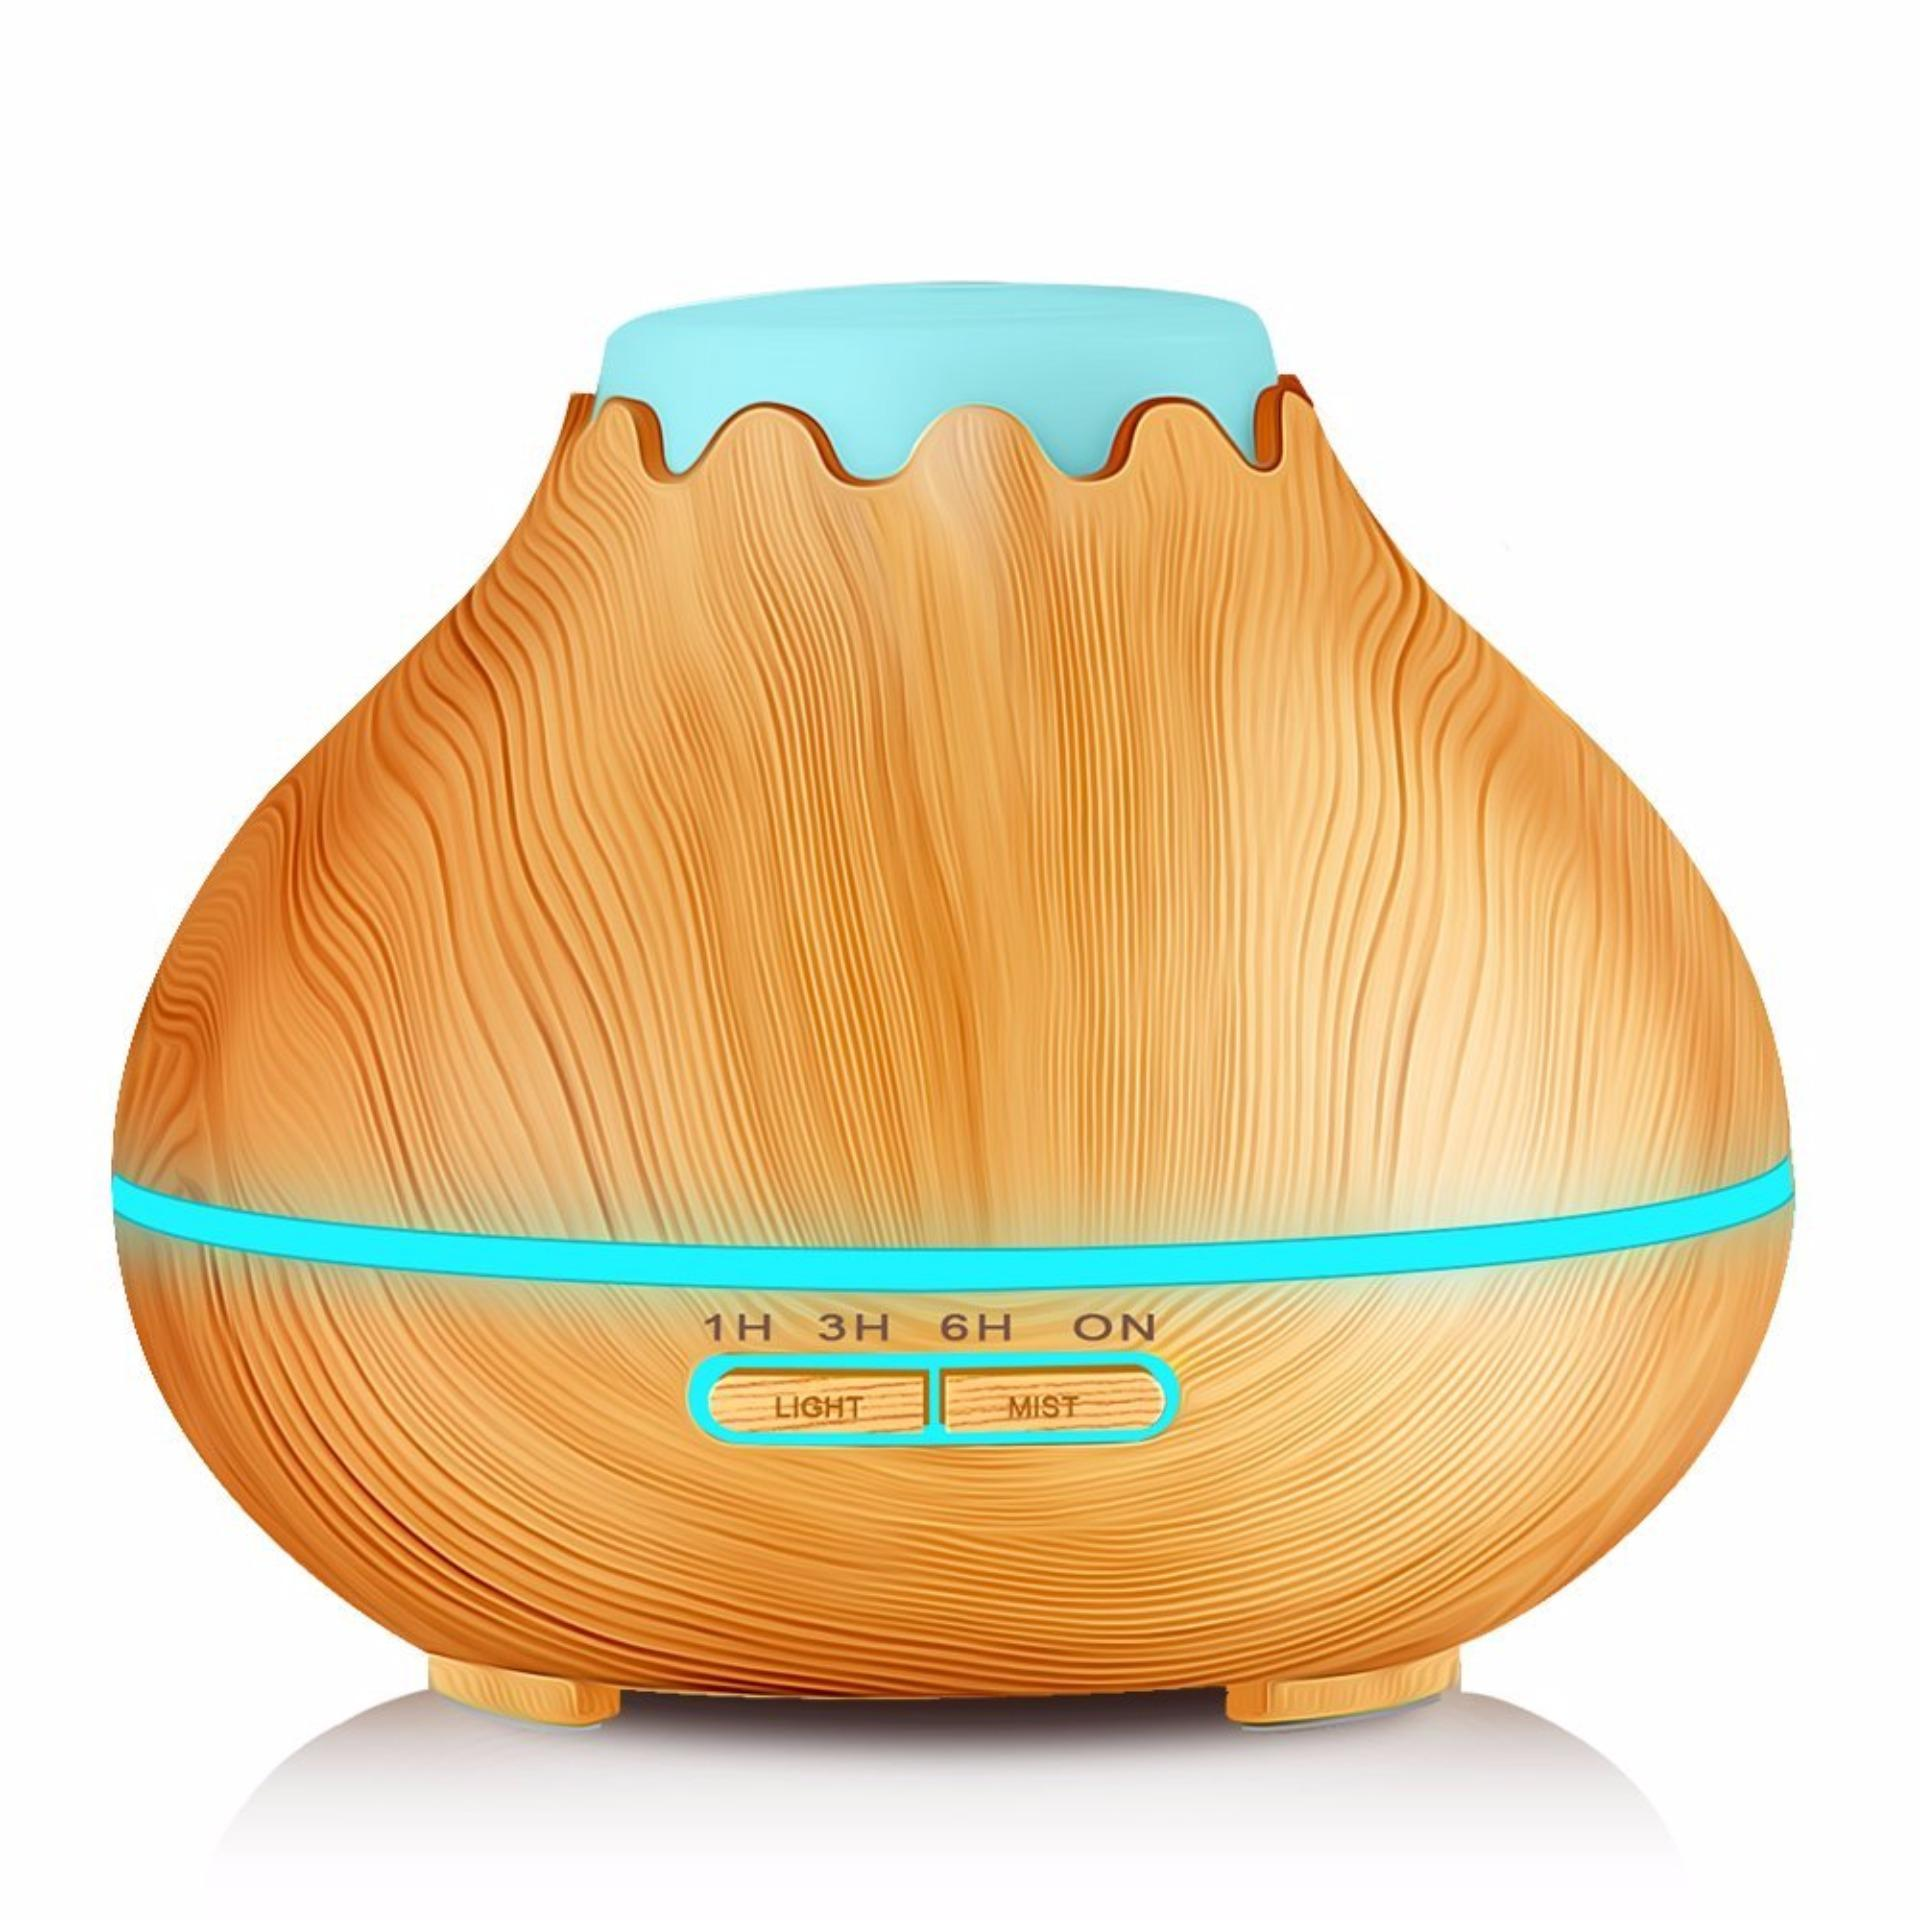 H05 - Essential Oil Aromatherapy Diffuser Ultrasonic Cool Mist Aroma Humidifier 7 Colors Mood Light LED